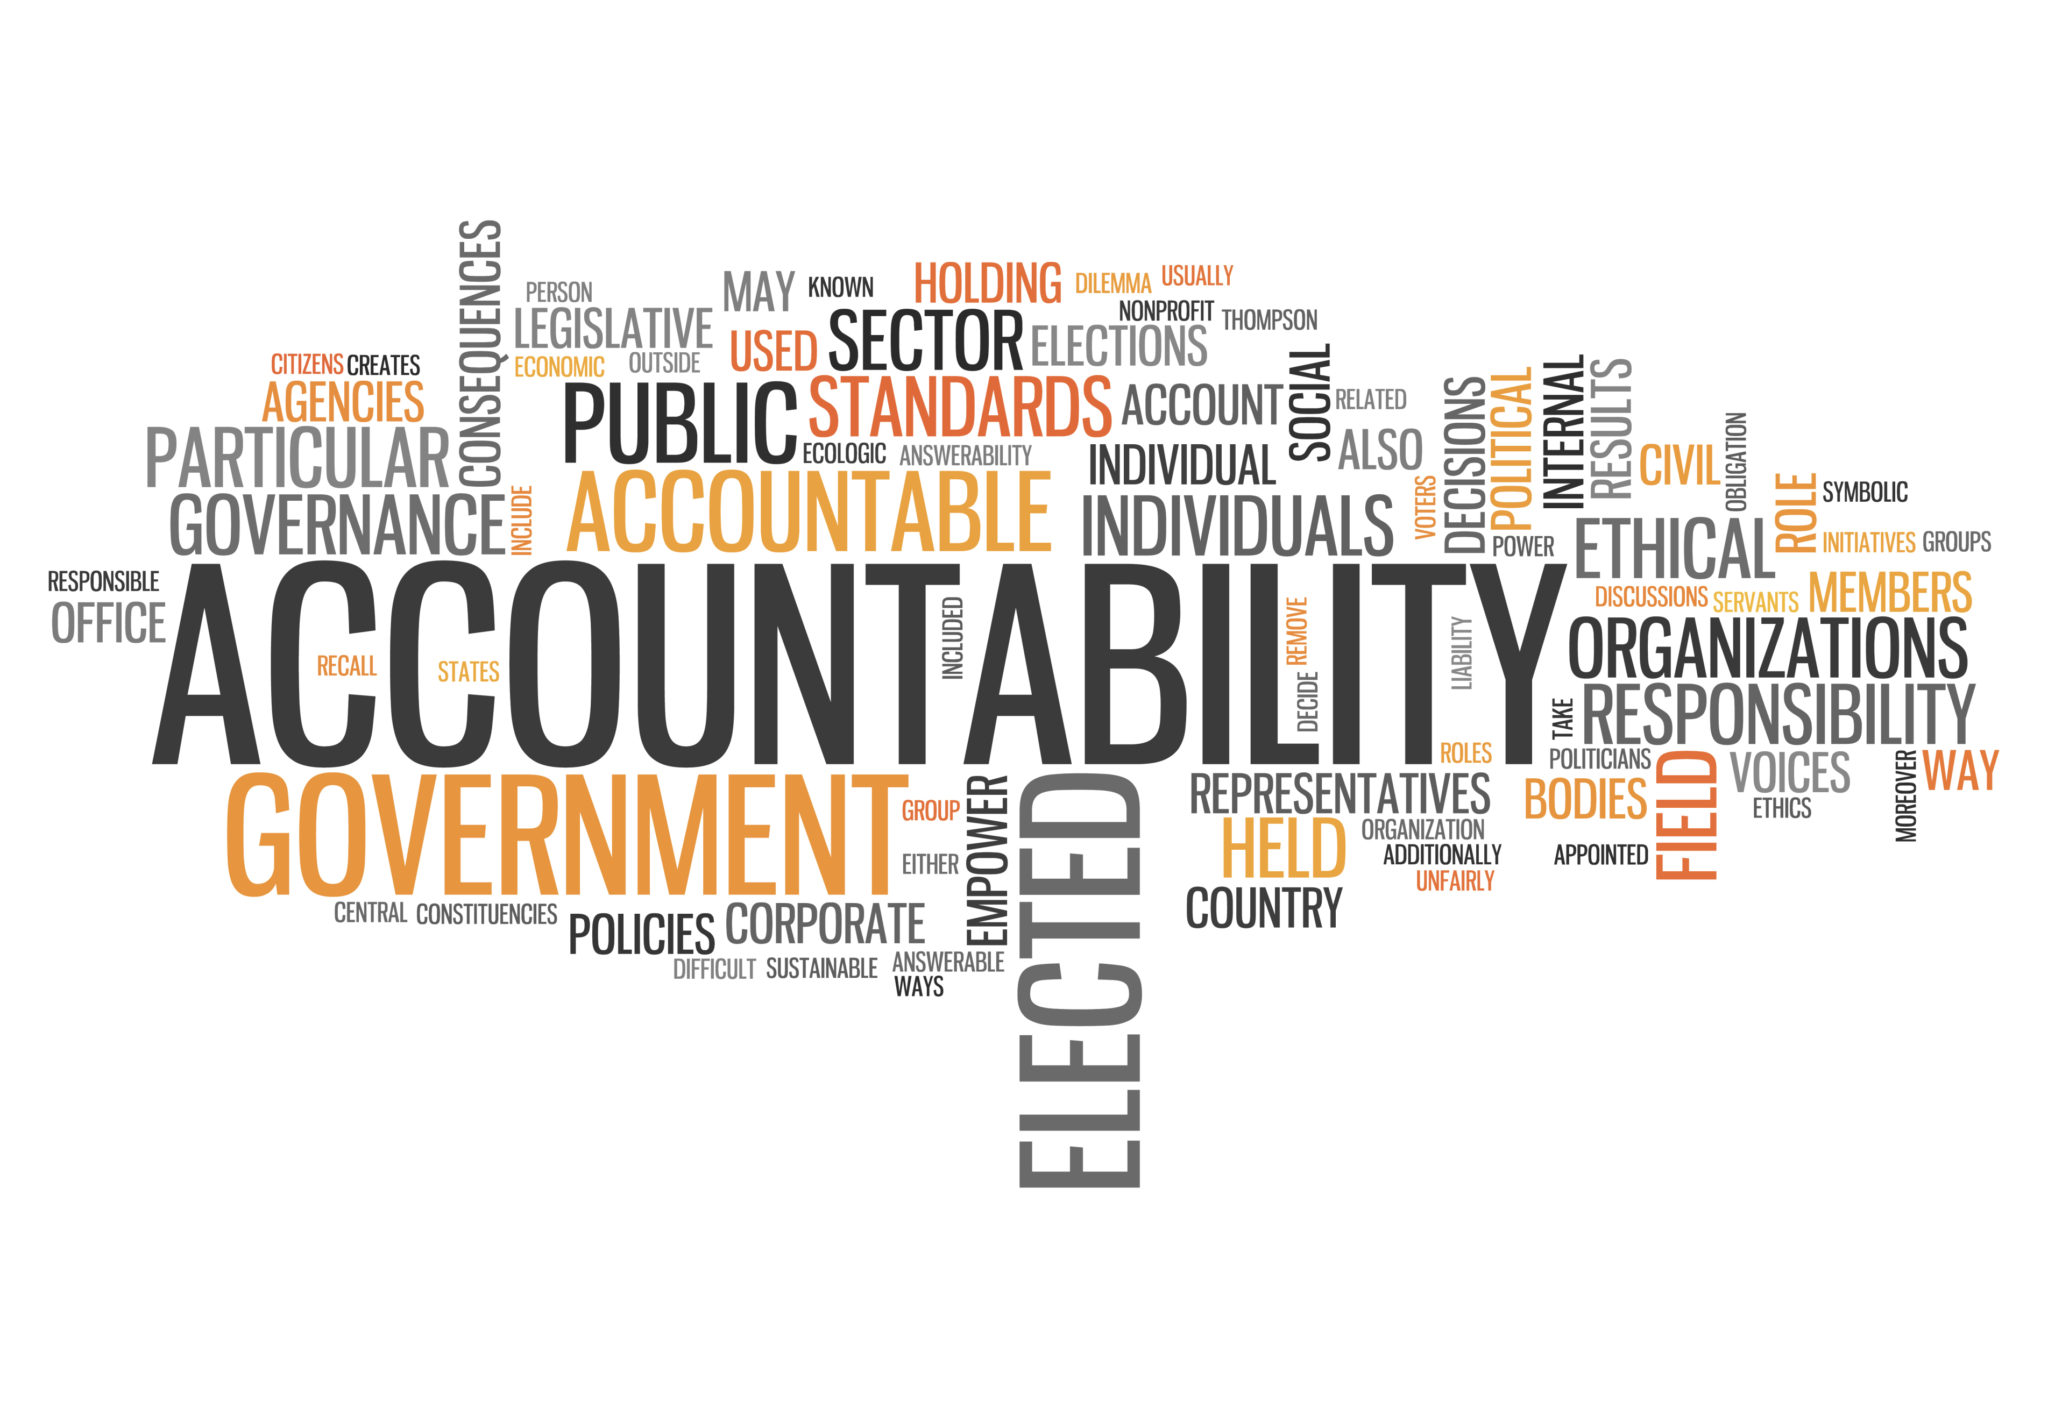 Da dove partire per fare Ordine? Dalla A di Accountability